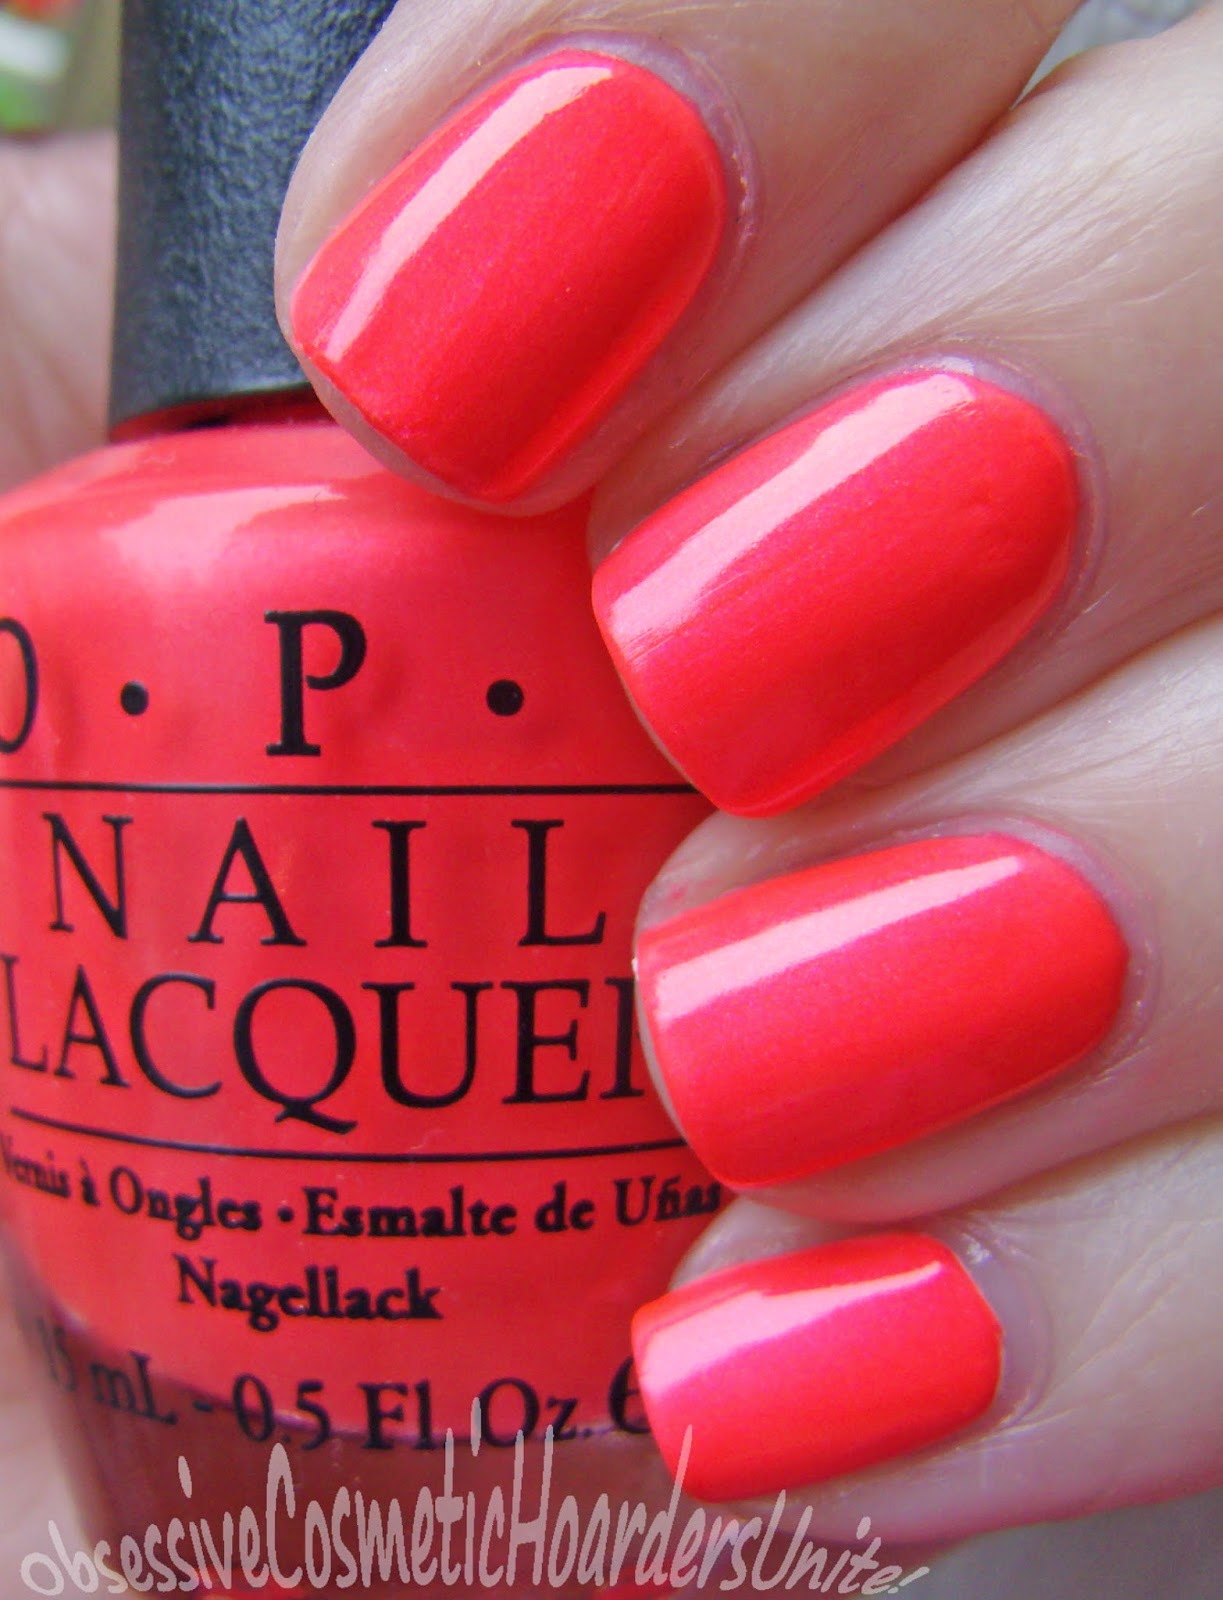 obsessive cosmetic hoarders unite!: new! opi neons for summer